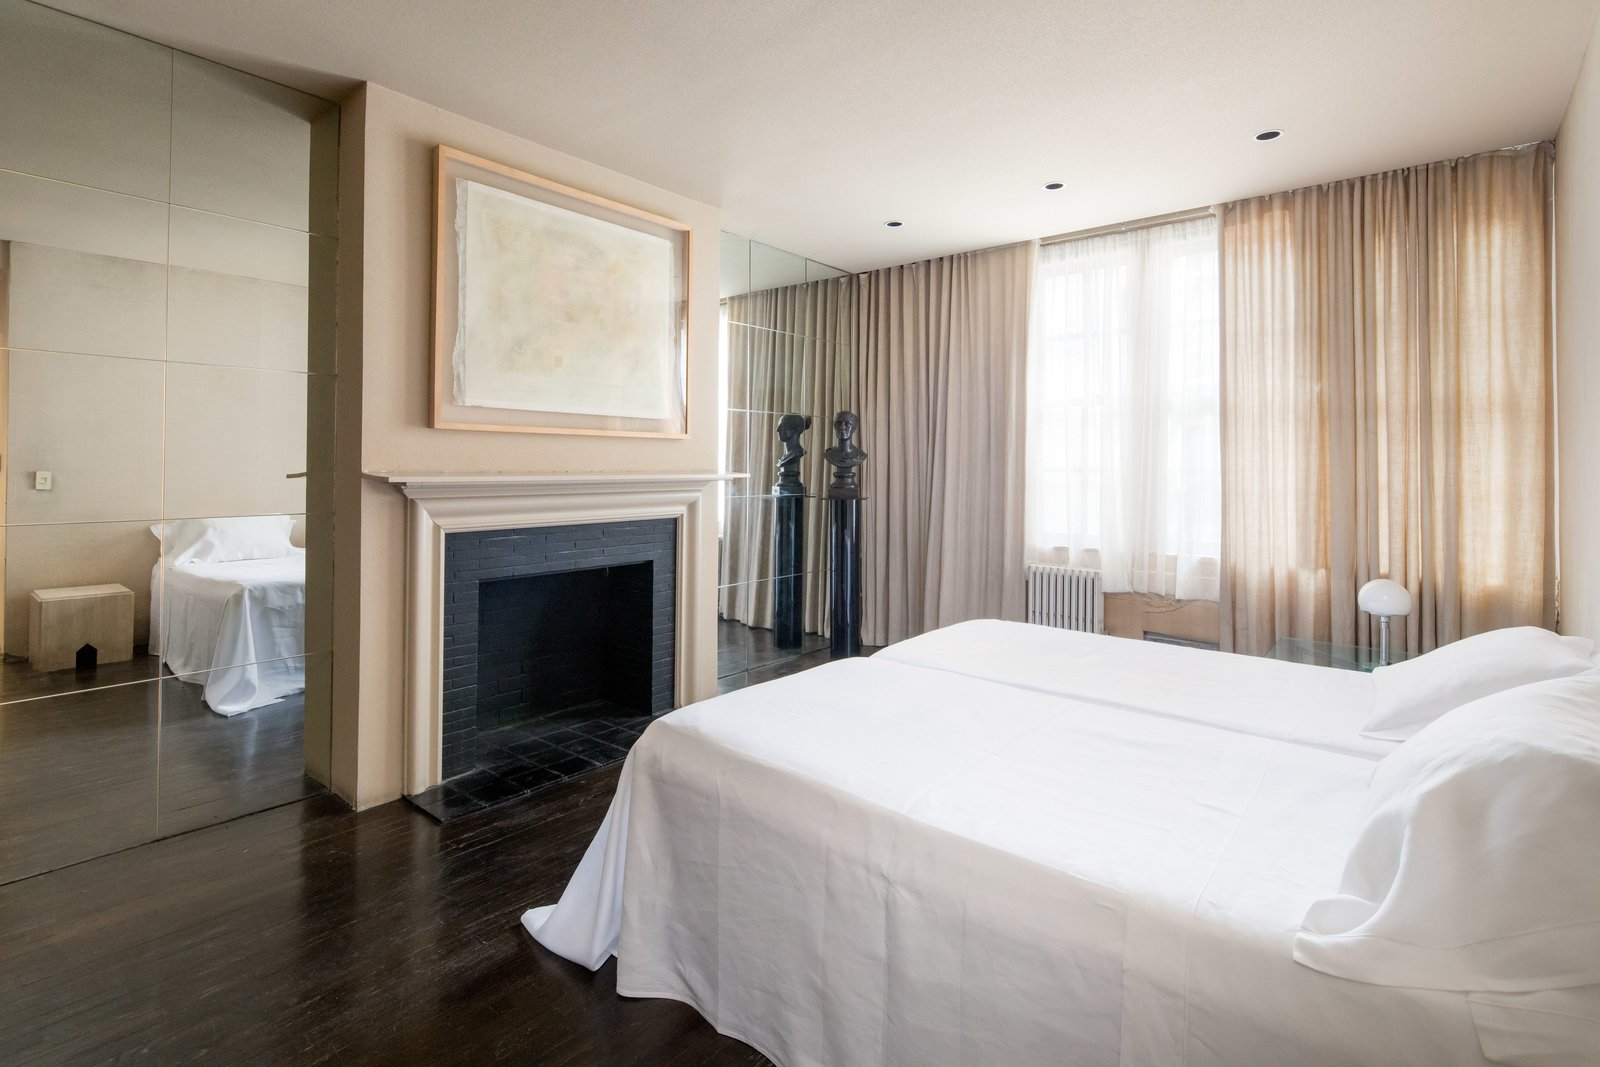 Bedroom, Bed, Dark Hardwood, Table, Recessed, Lamps, and Night Stands Each of the three bedrooms has an en-suite bathroom.  Best Bedroom Lamps Dark Hardwood Photos from Legendary Designers Massimo and Lella Vignelli's New York Duplex Is Listed at $6.5M